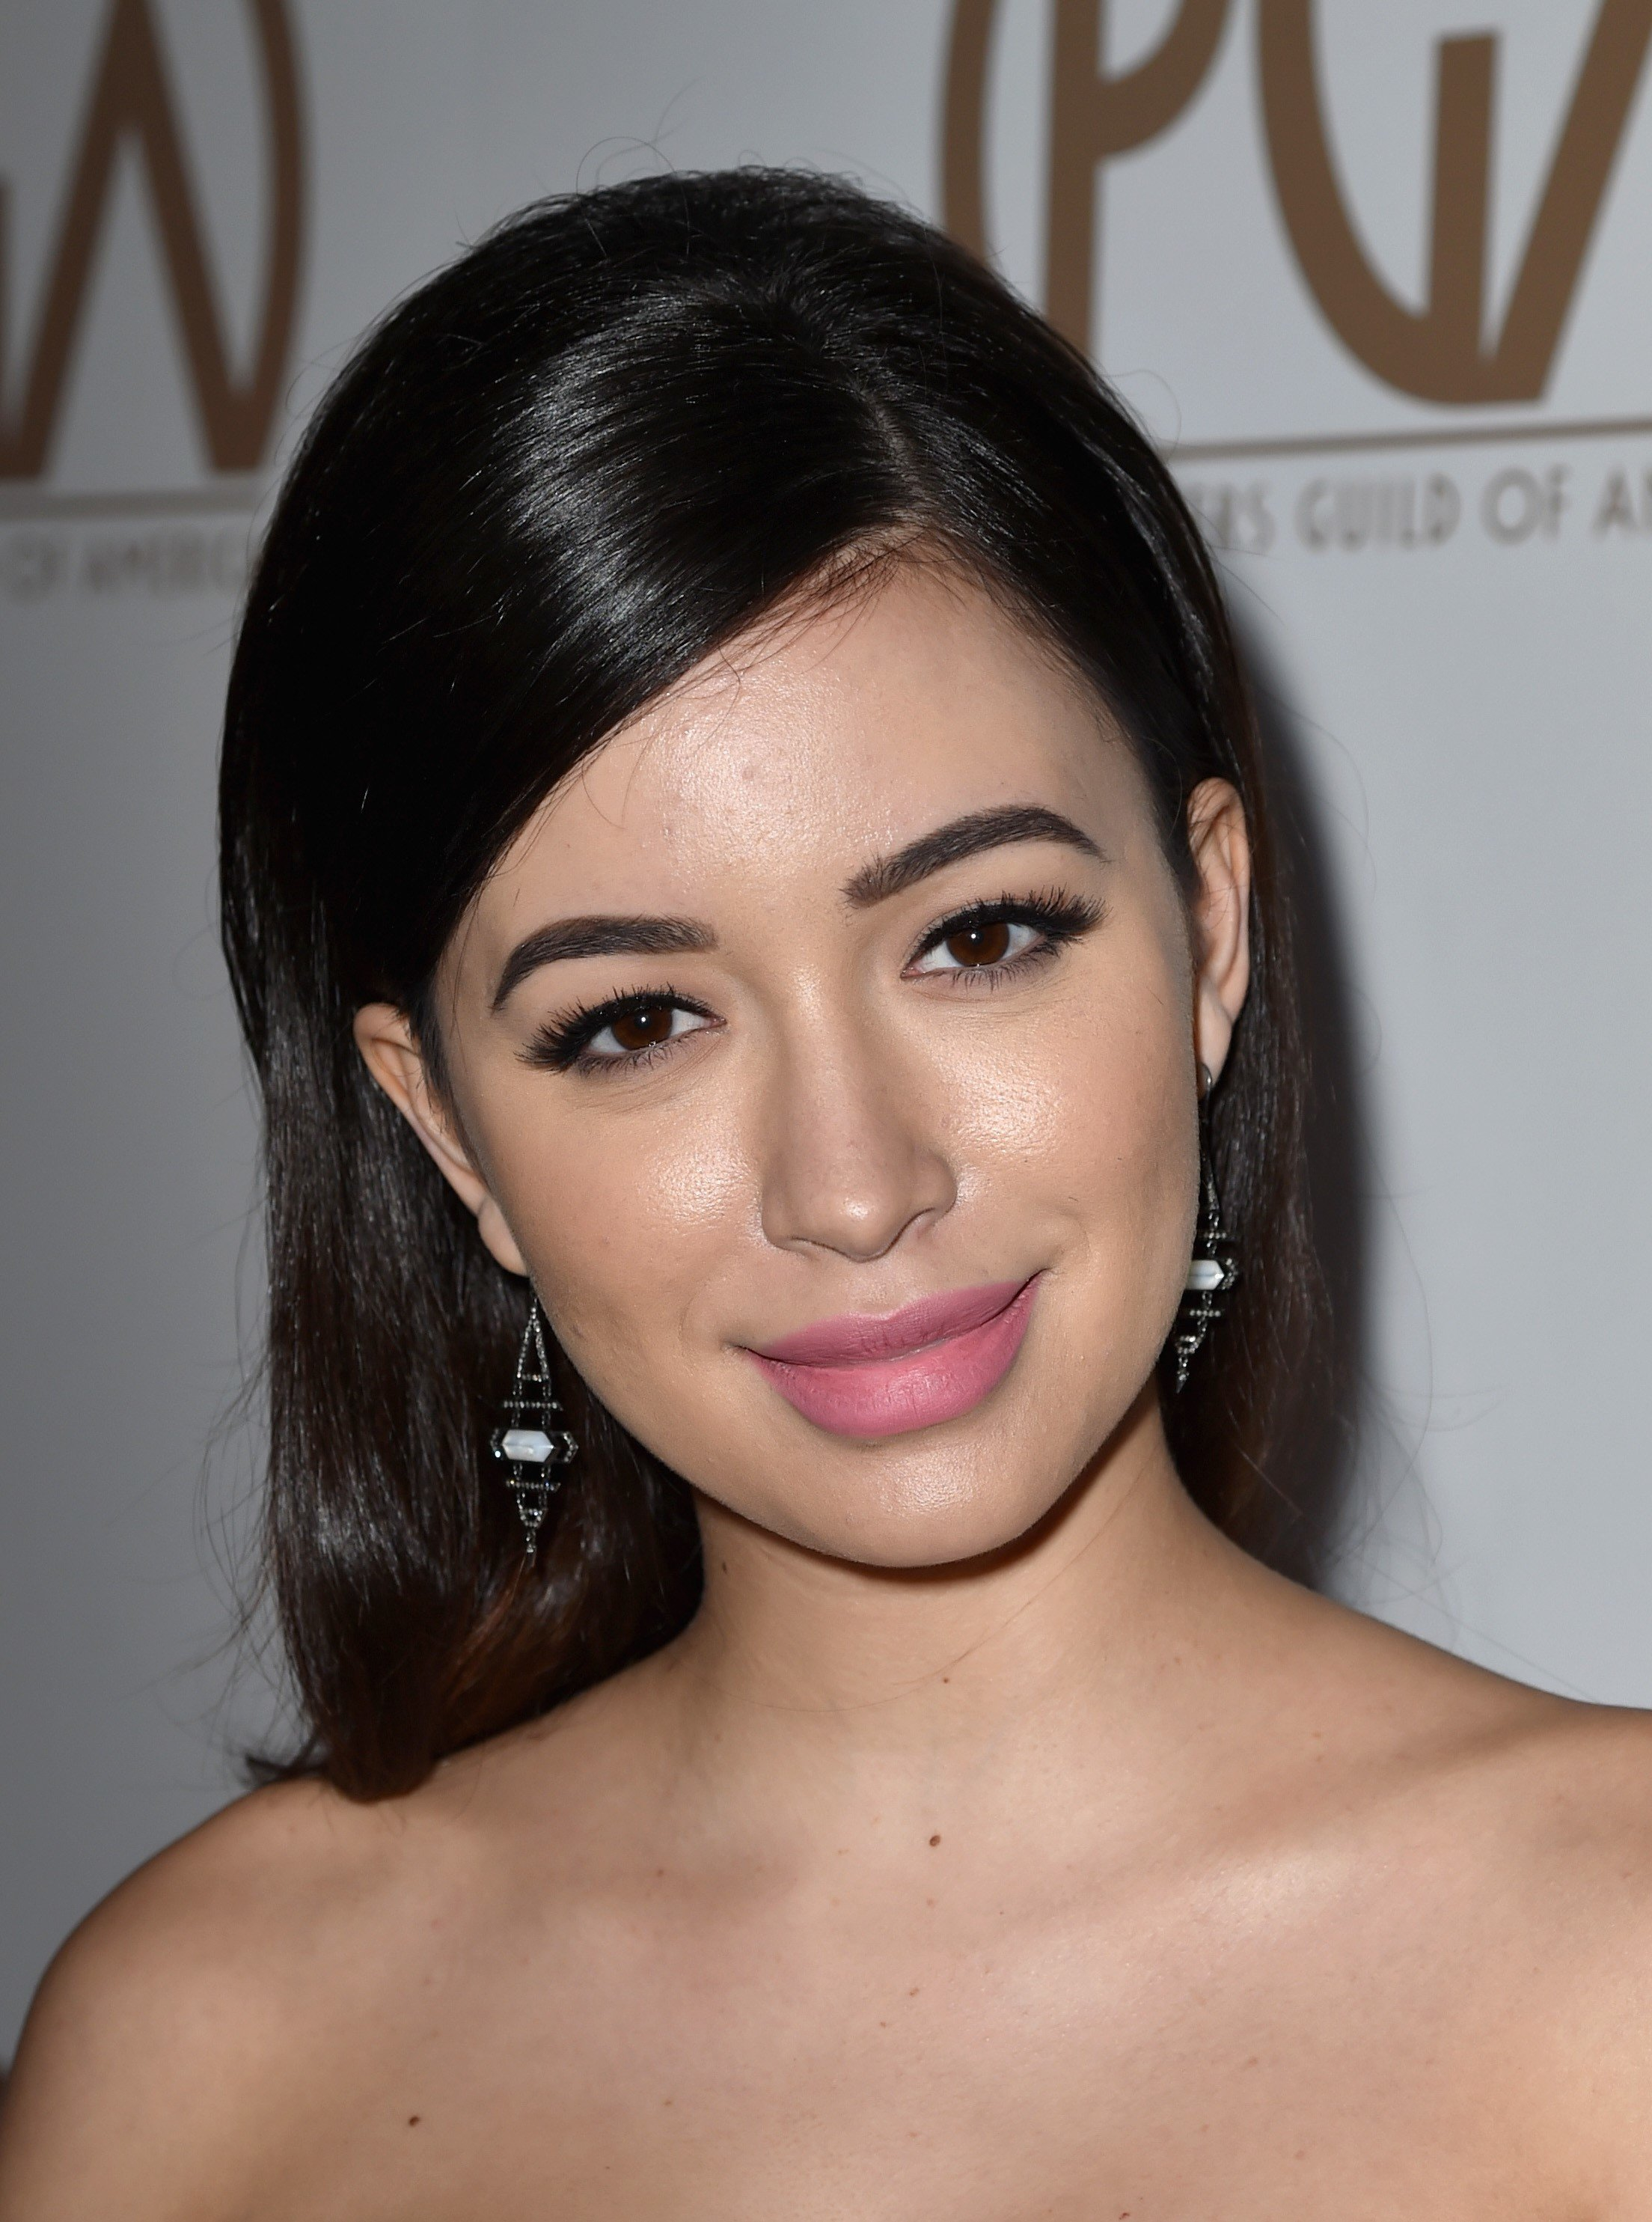 Christian Serratos HQ